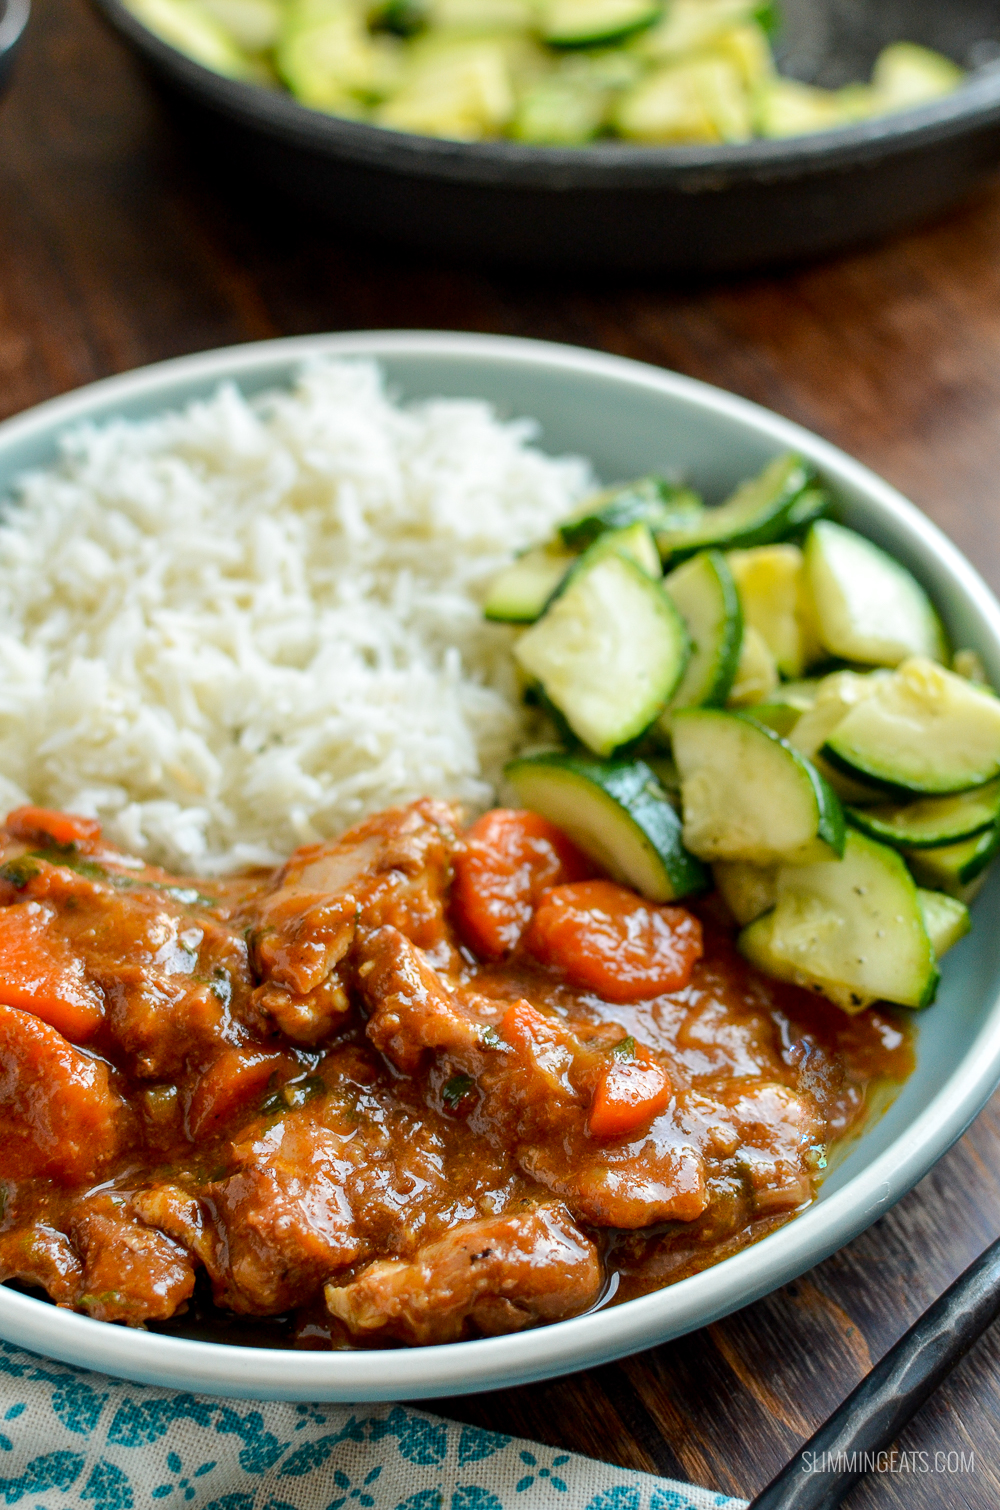 spicy ginger chicken on blue plate with zucchini and rice on wooden board